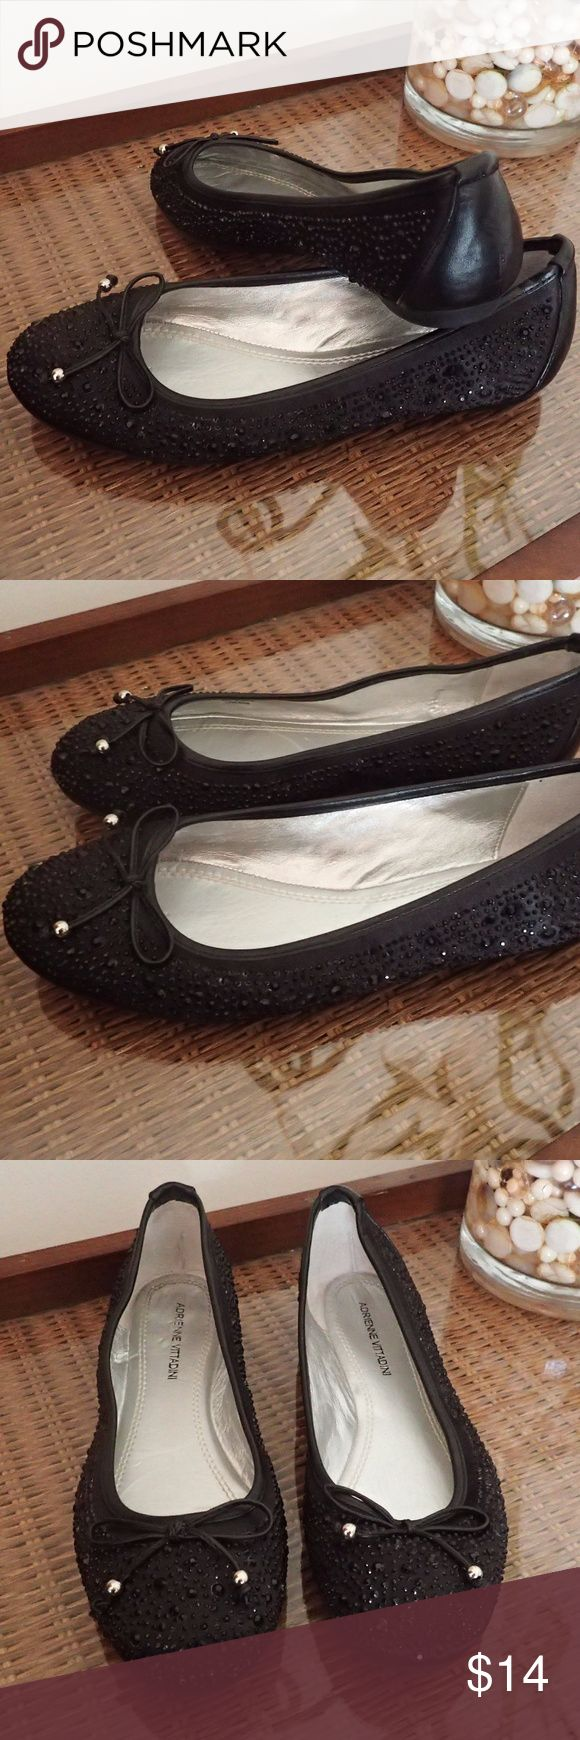 Adrienne Vittadini Black Rhinestone Flats Adrienne Vittadini Black Rhinestone Flats  * Size 6B * Padded footbed * Cathi Collection  * Good condition with signs of wear inside and outside of sole Adrienne Vittadini Shoes Flats & Loafers